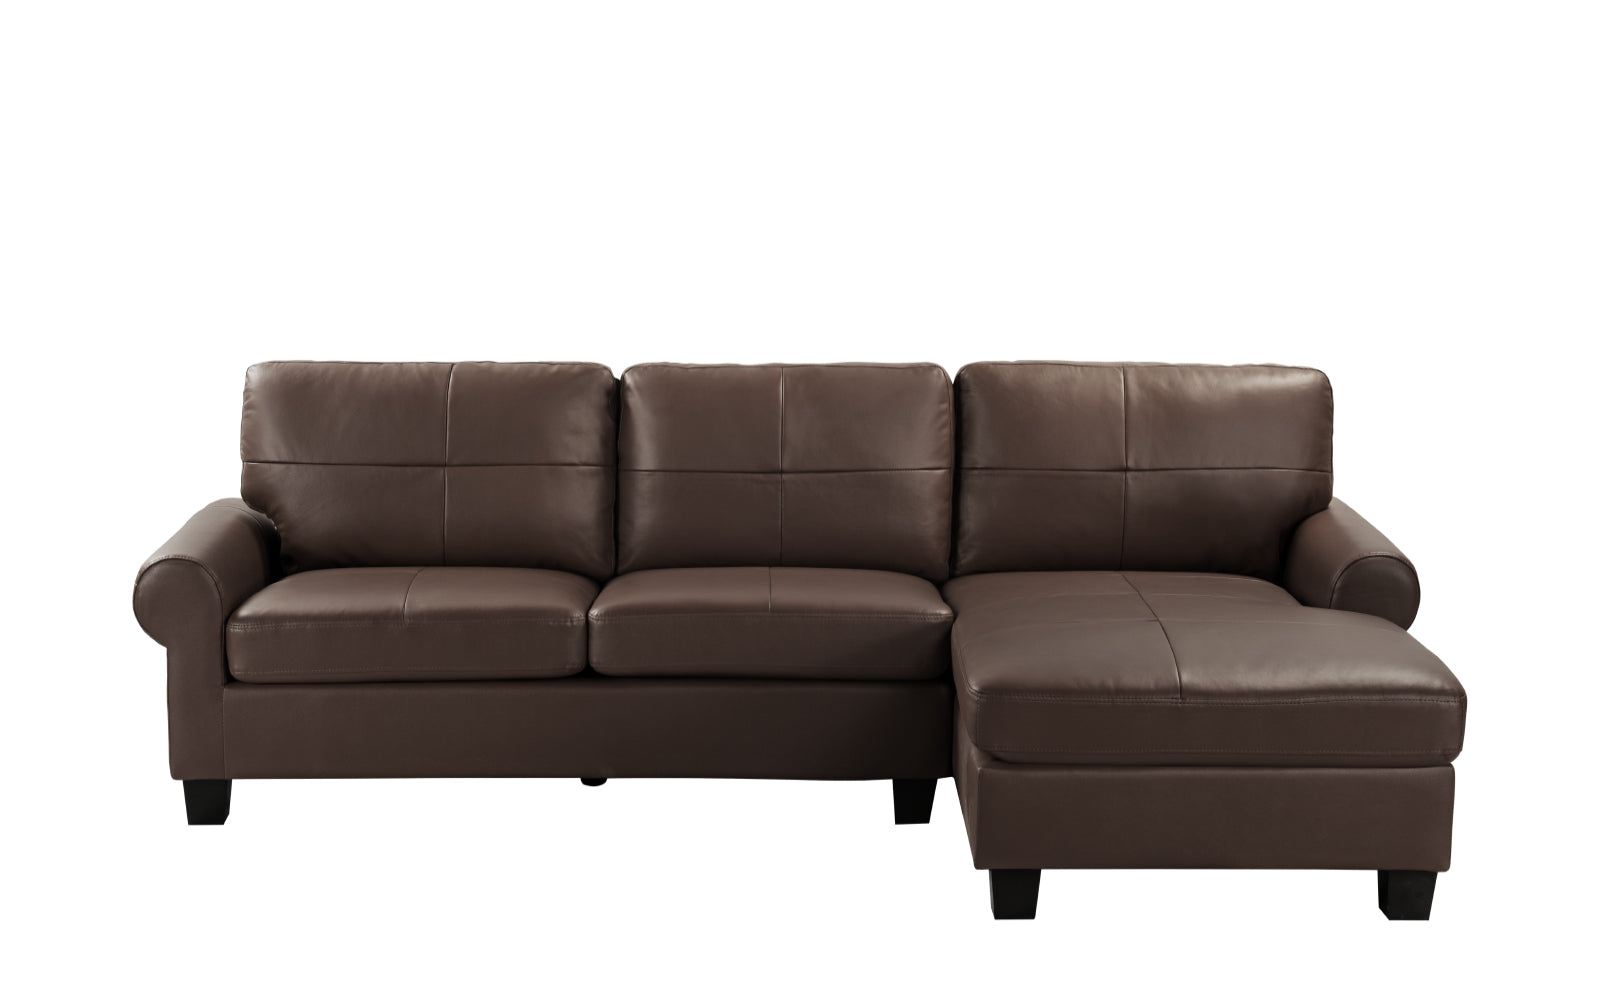 Dallas Leather Match Sectional Sofa with Right Facing Chaise